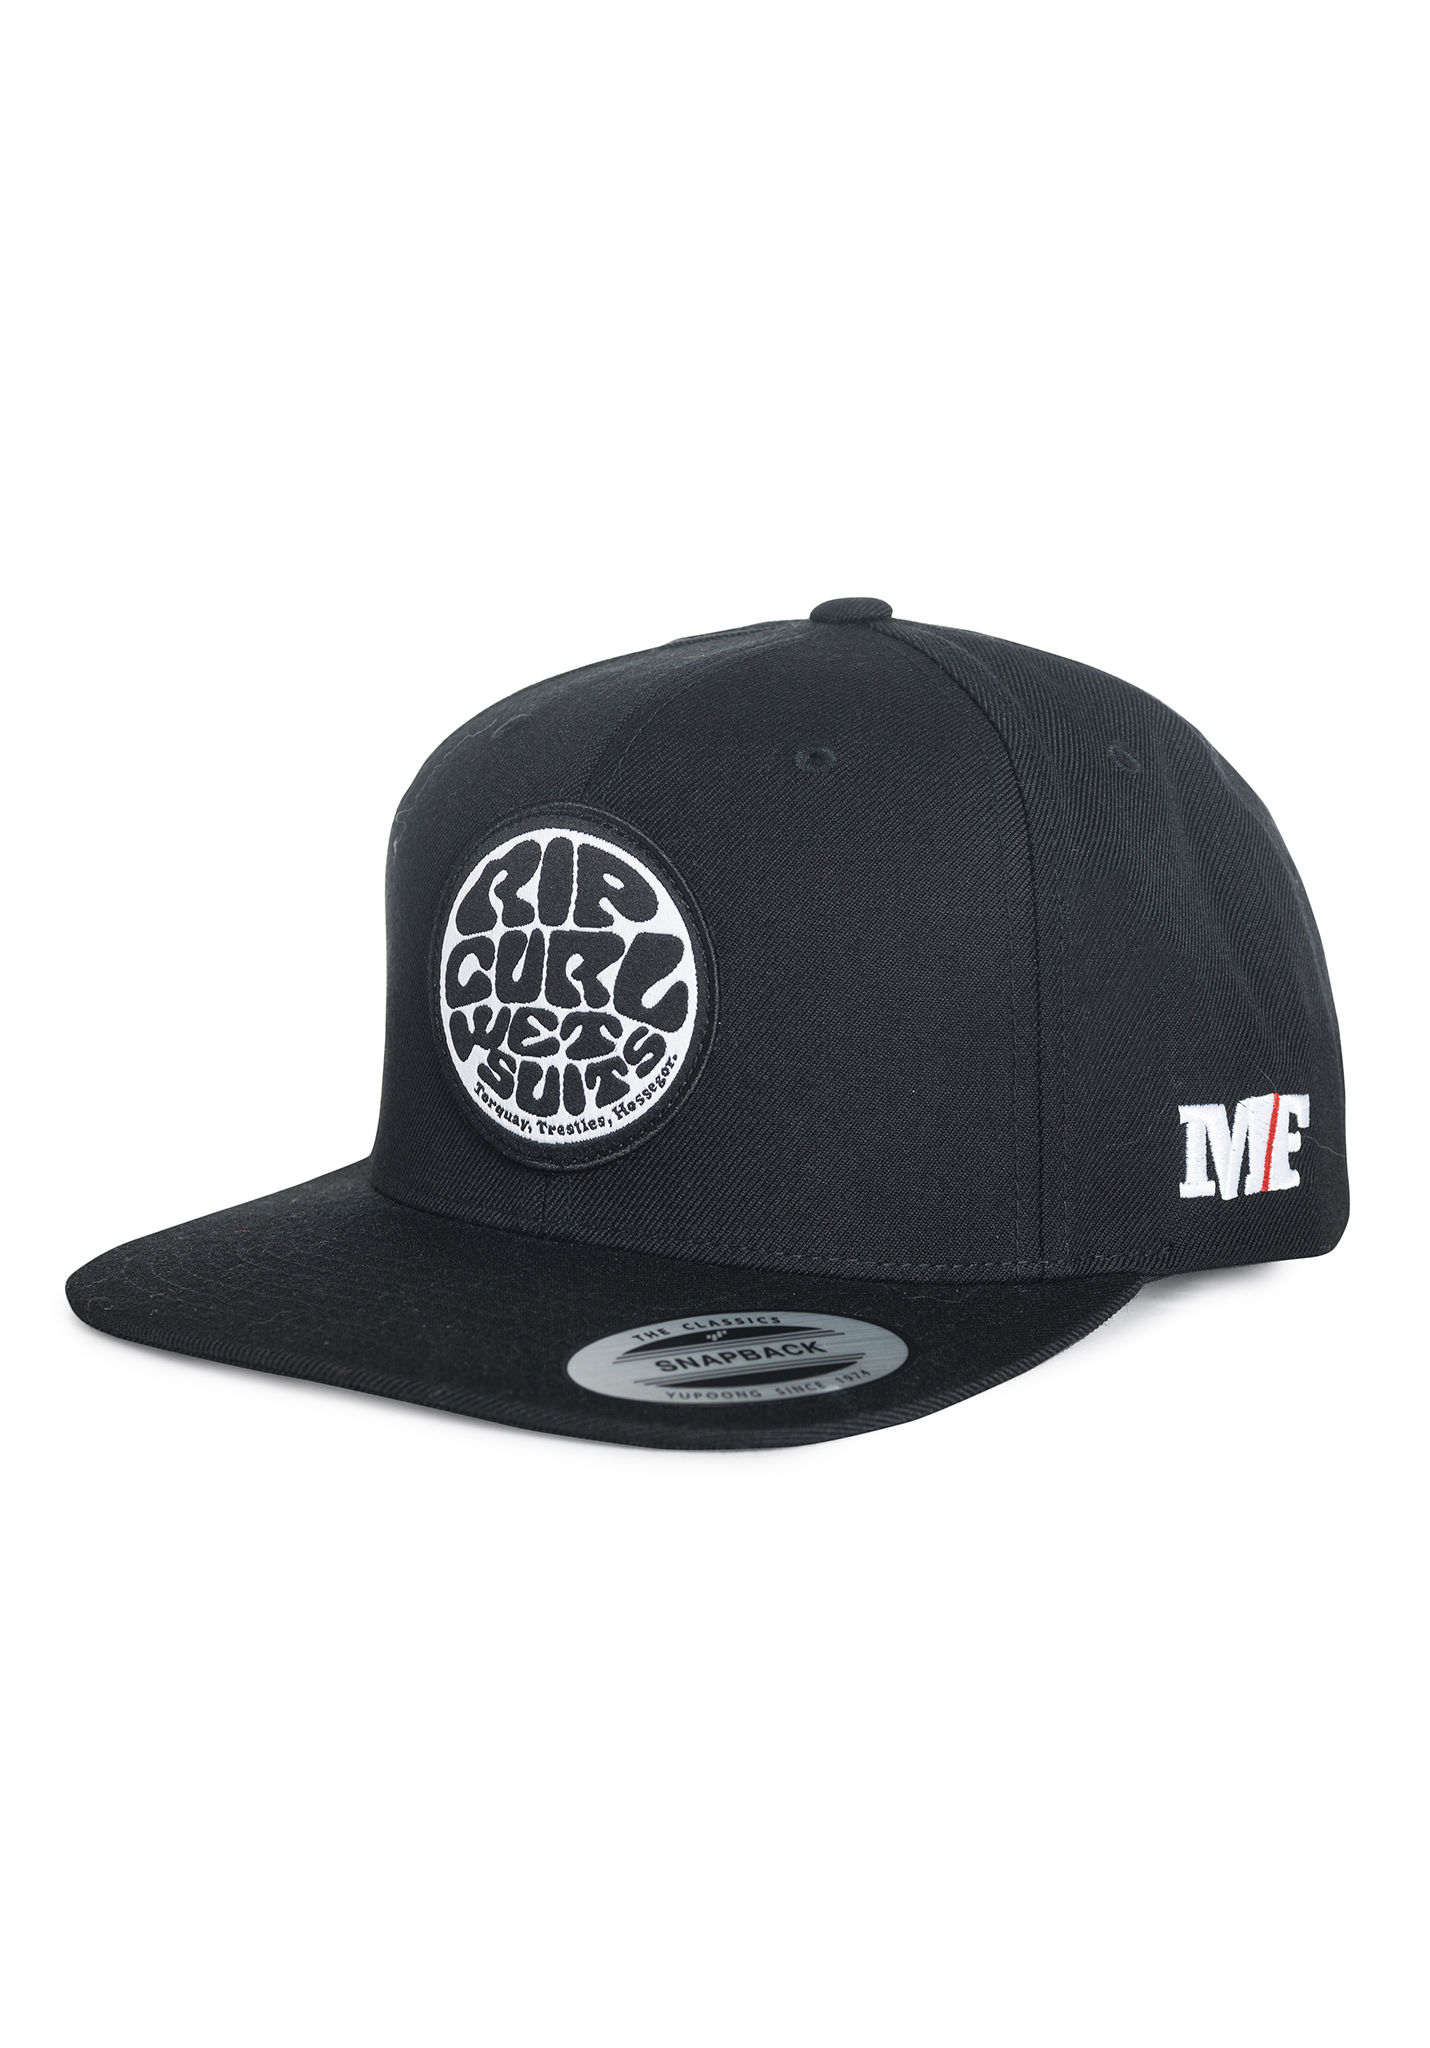 Rip Curl Mf Wetty Snap Back - Cap for Men - Black - Planet Sports bbe418764f4